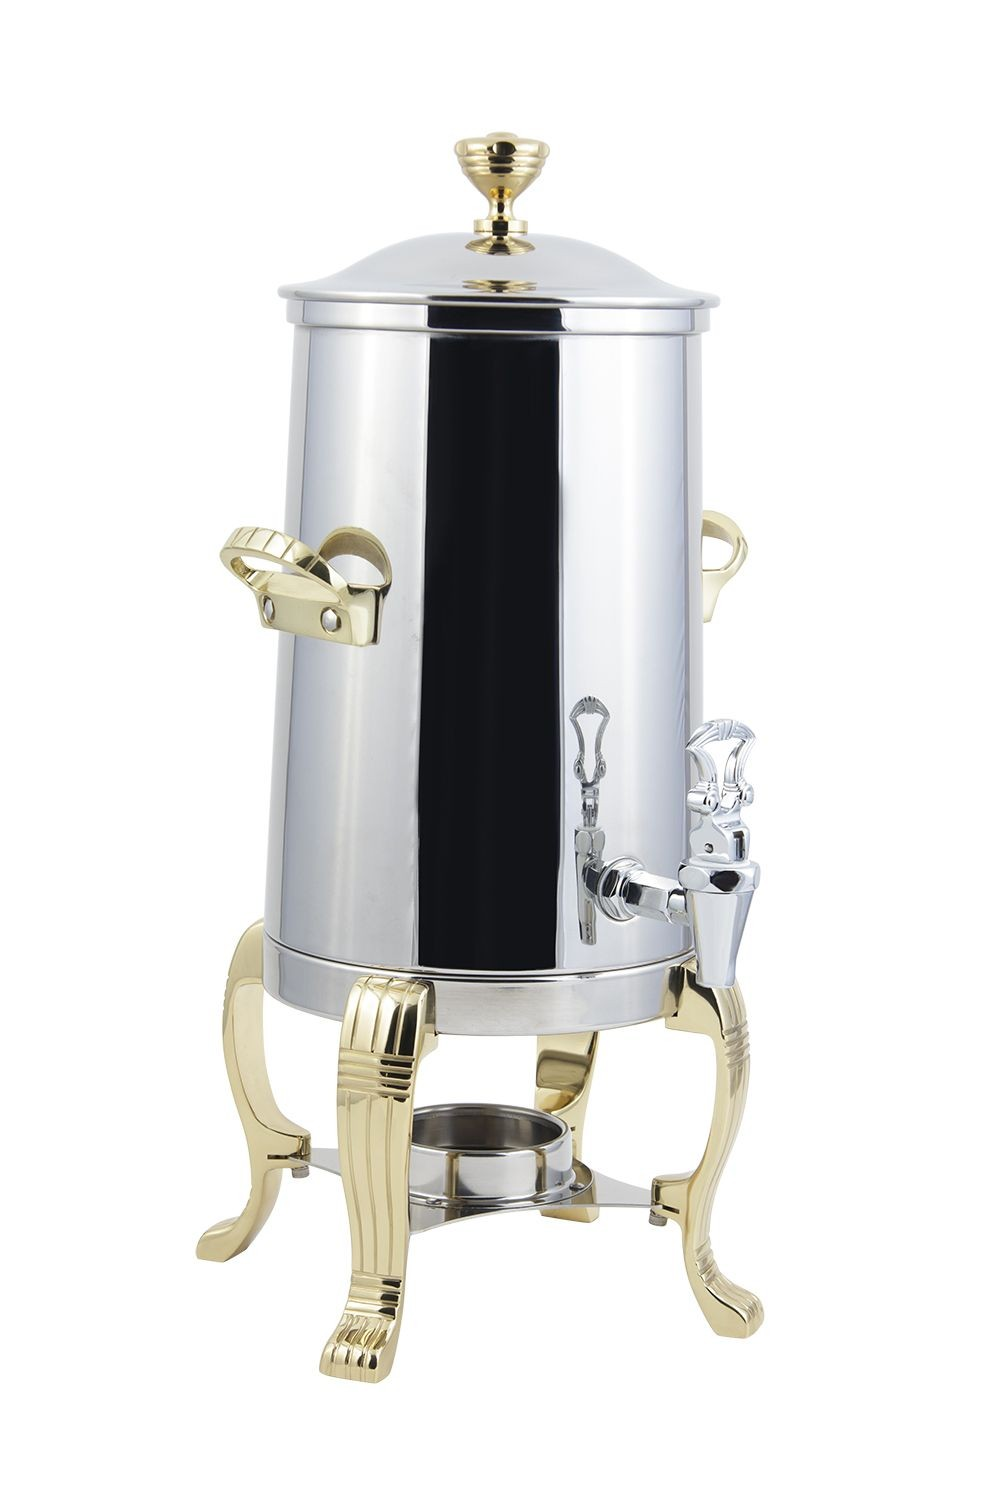 Bon Chef 41001 Aurora Single Wall Non-Insulated Coffee Urn, 2 Gallon